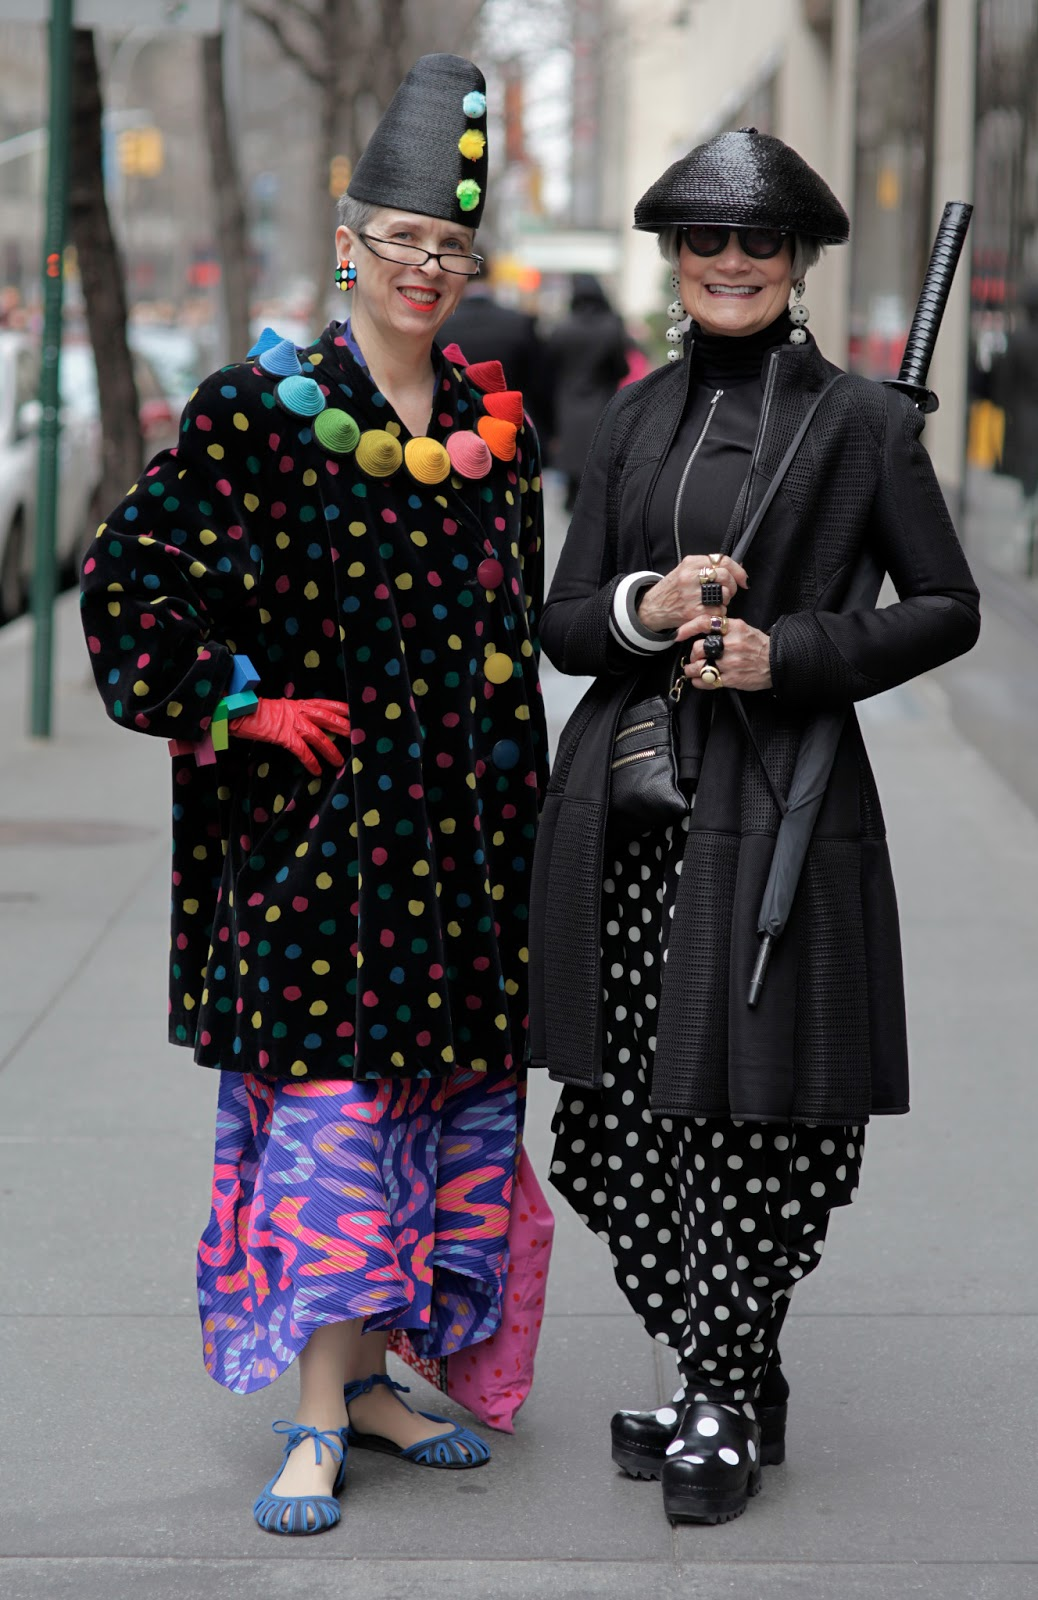 The Idiosyncratic Fashionistas Live on WABC-TV NEWS ...